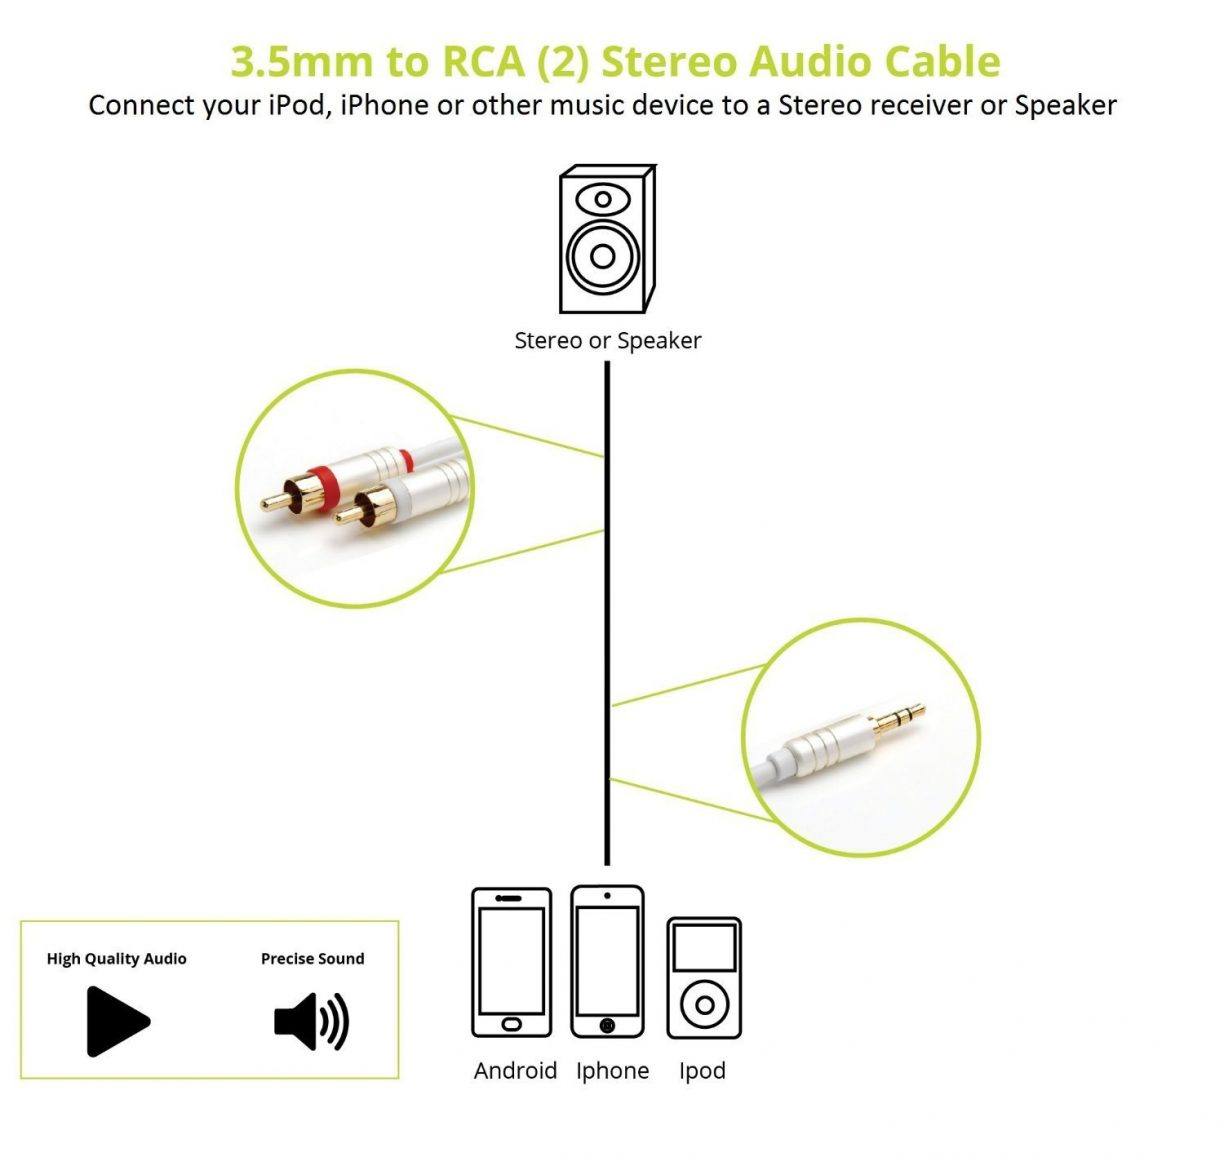 Audio Cable Wiring Diagram Mfi Lightning Jack Adapter Ipod Wiringam - Lightning Connector To Usb Wiring Diagram